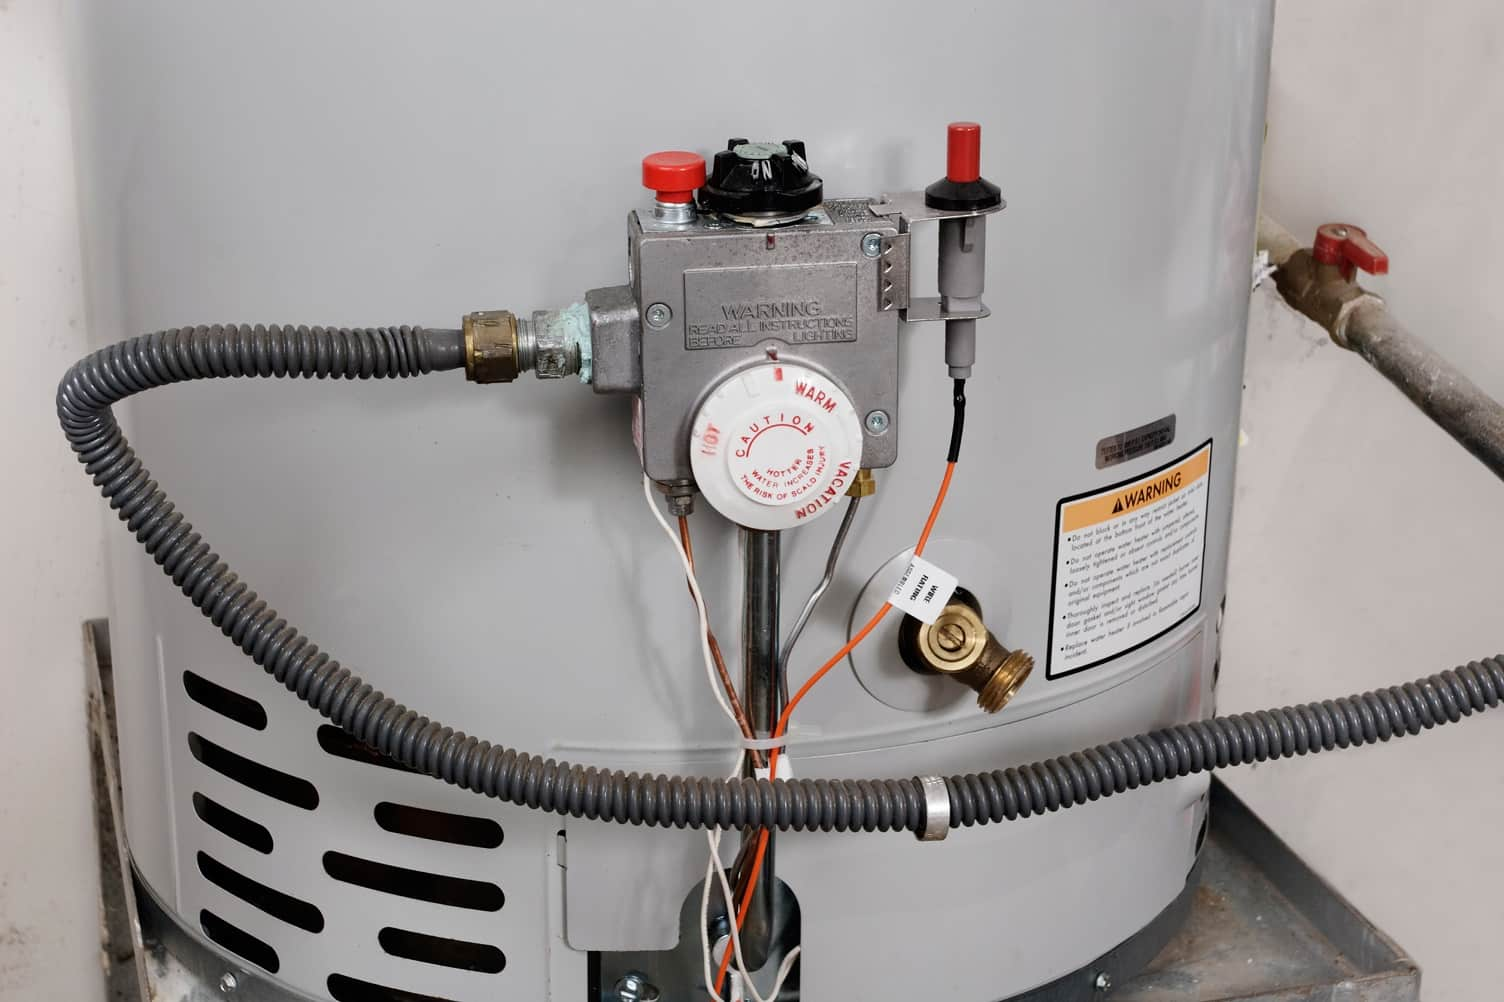 5 Construction Myths On Water Heating Services You Shouldn't Believe. Thermostat at the back of the case